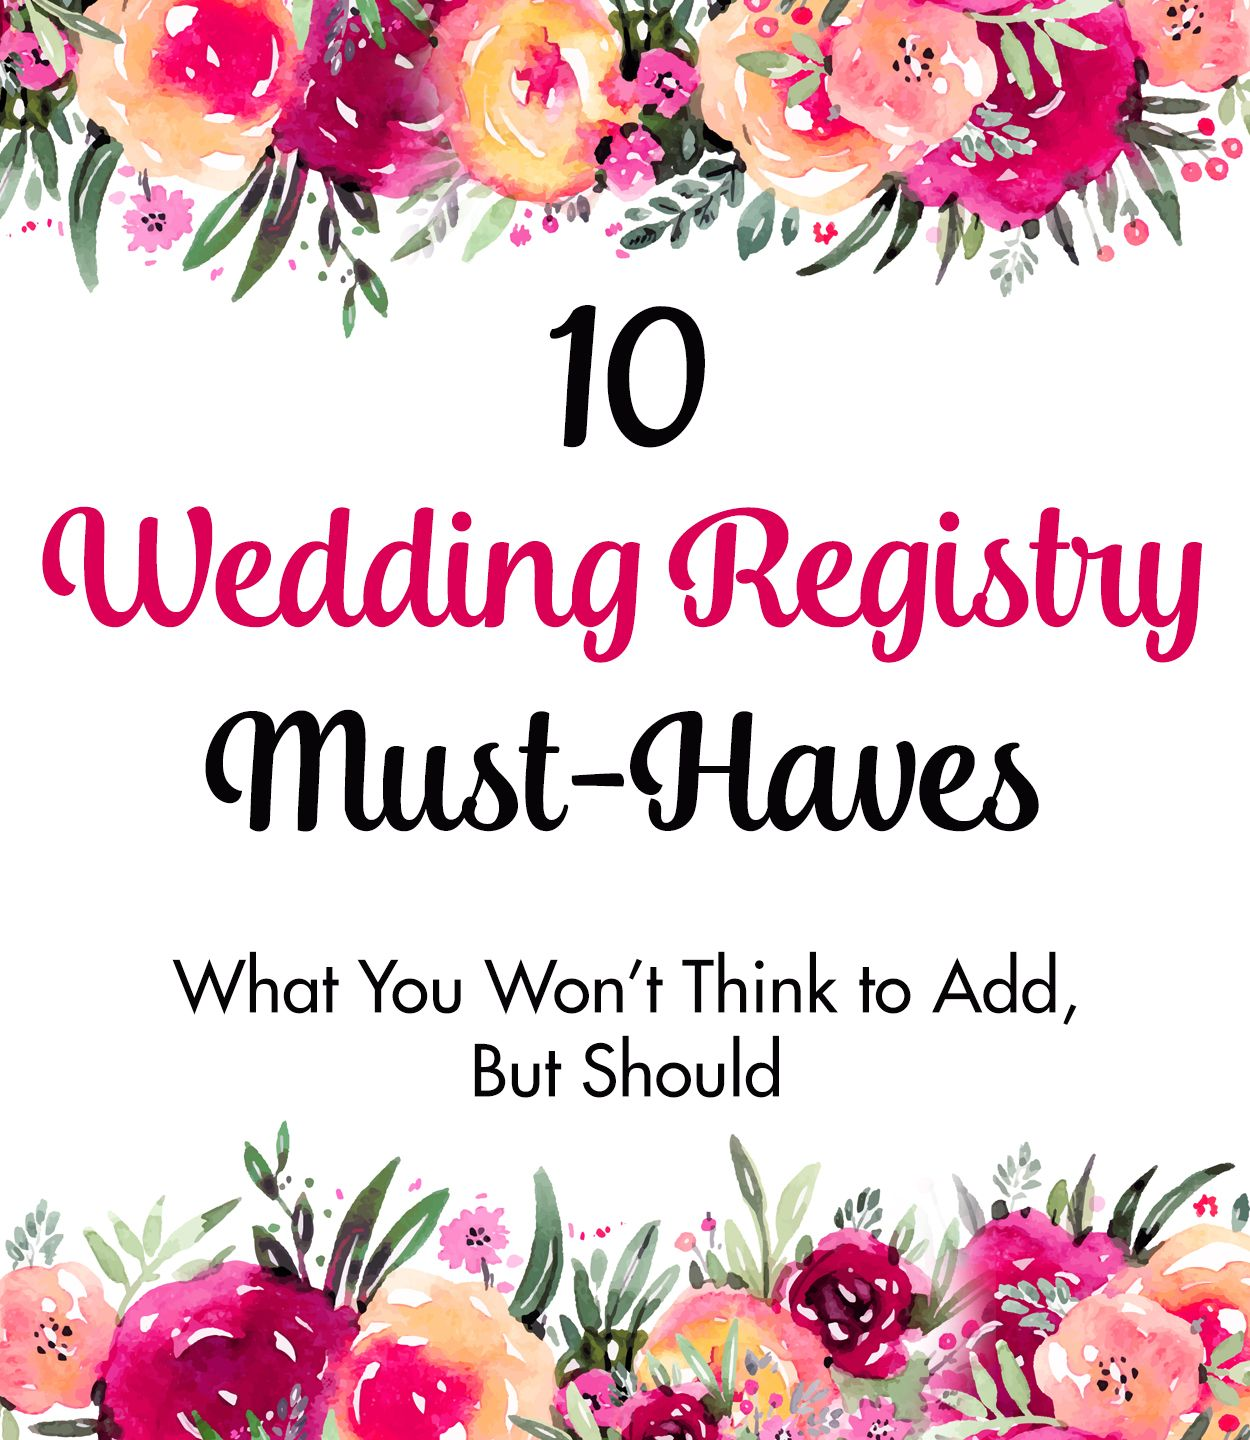 Must Have Wedding Picture List: 10 Wedding Registry Must-Haves: What You Won't Think To